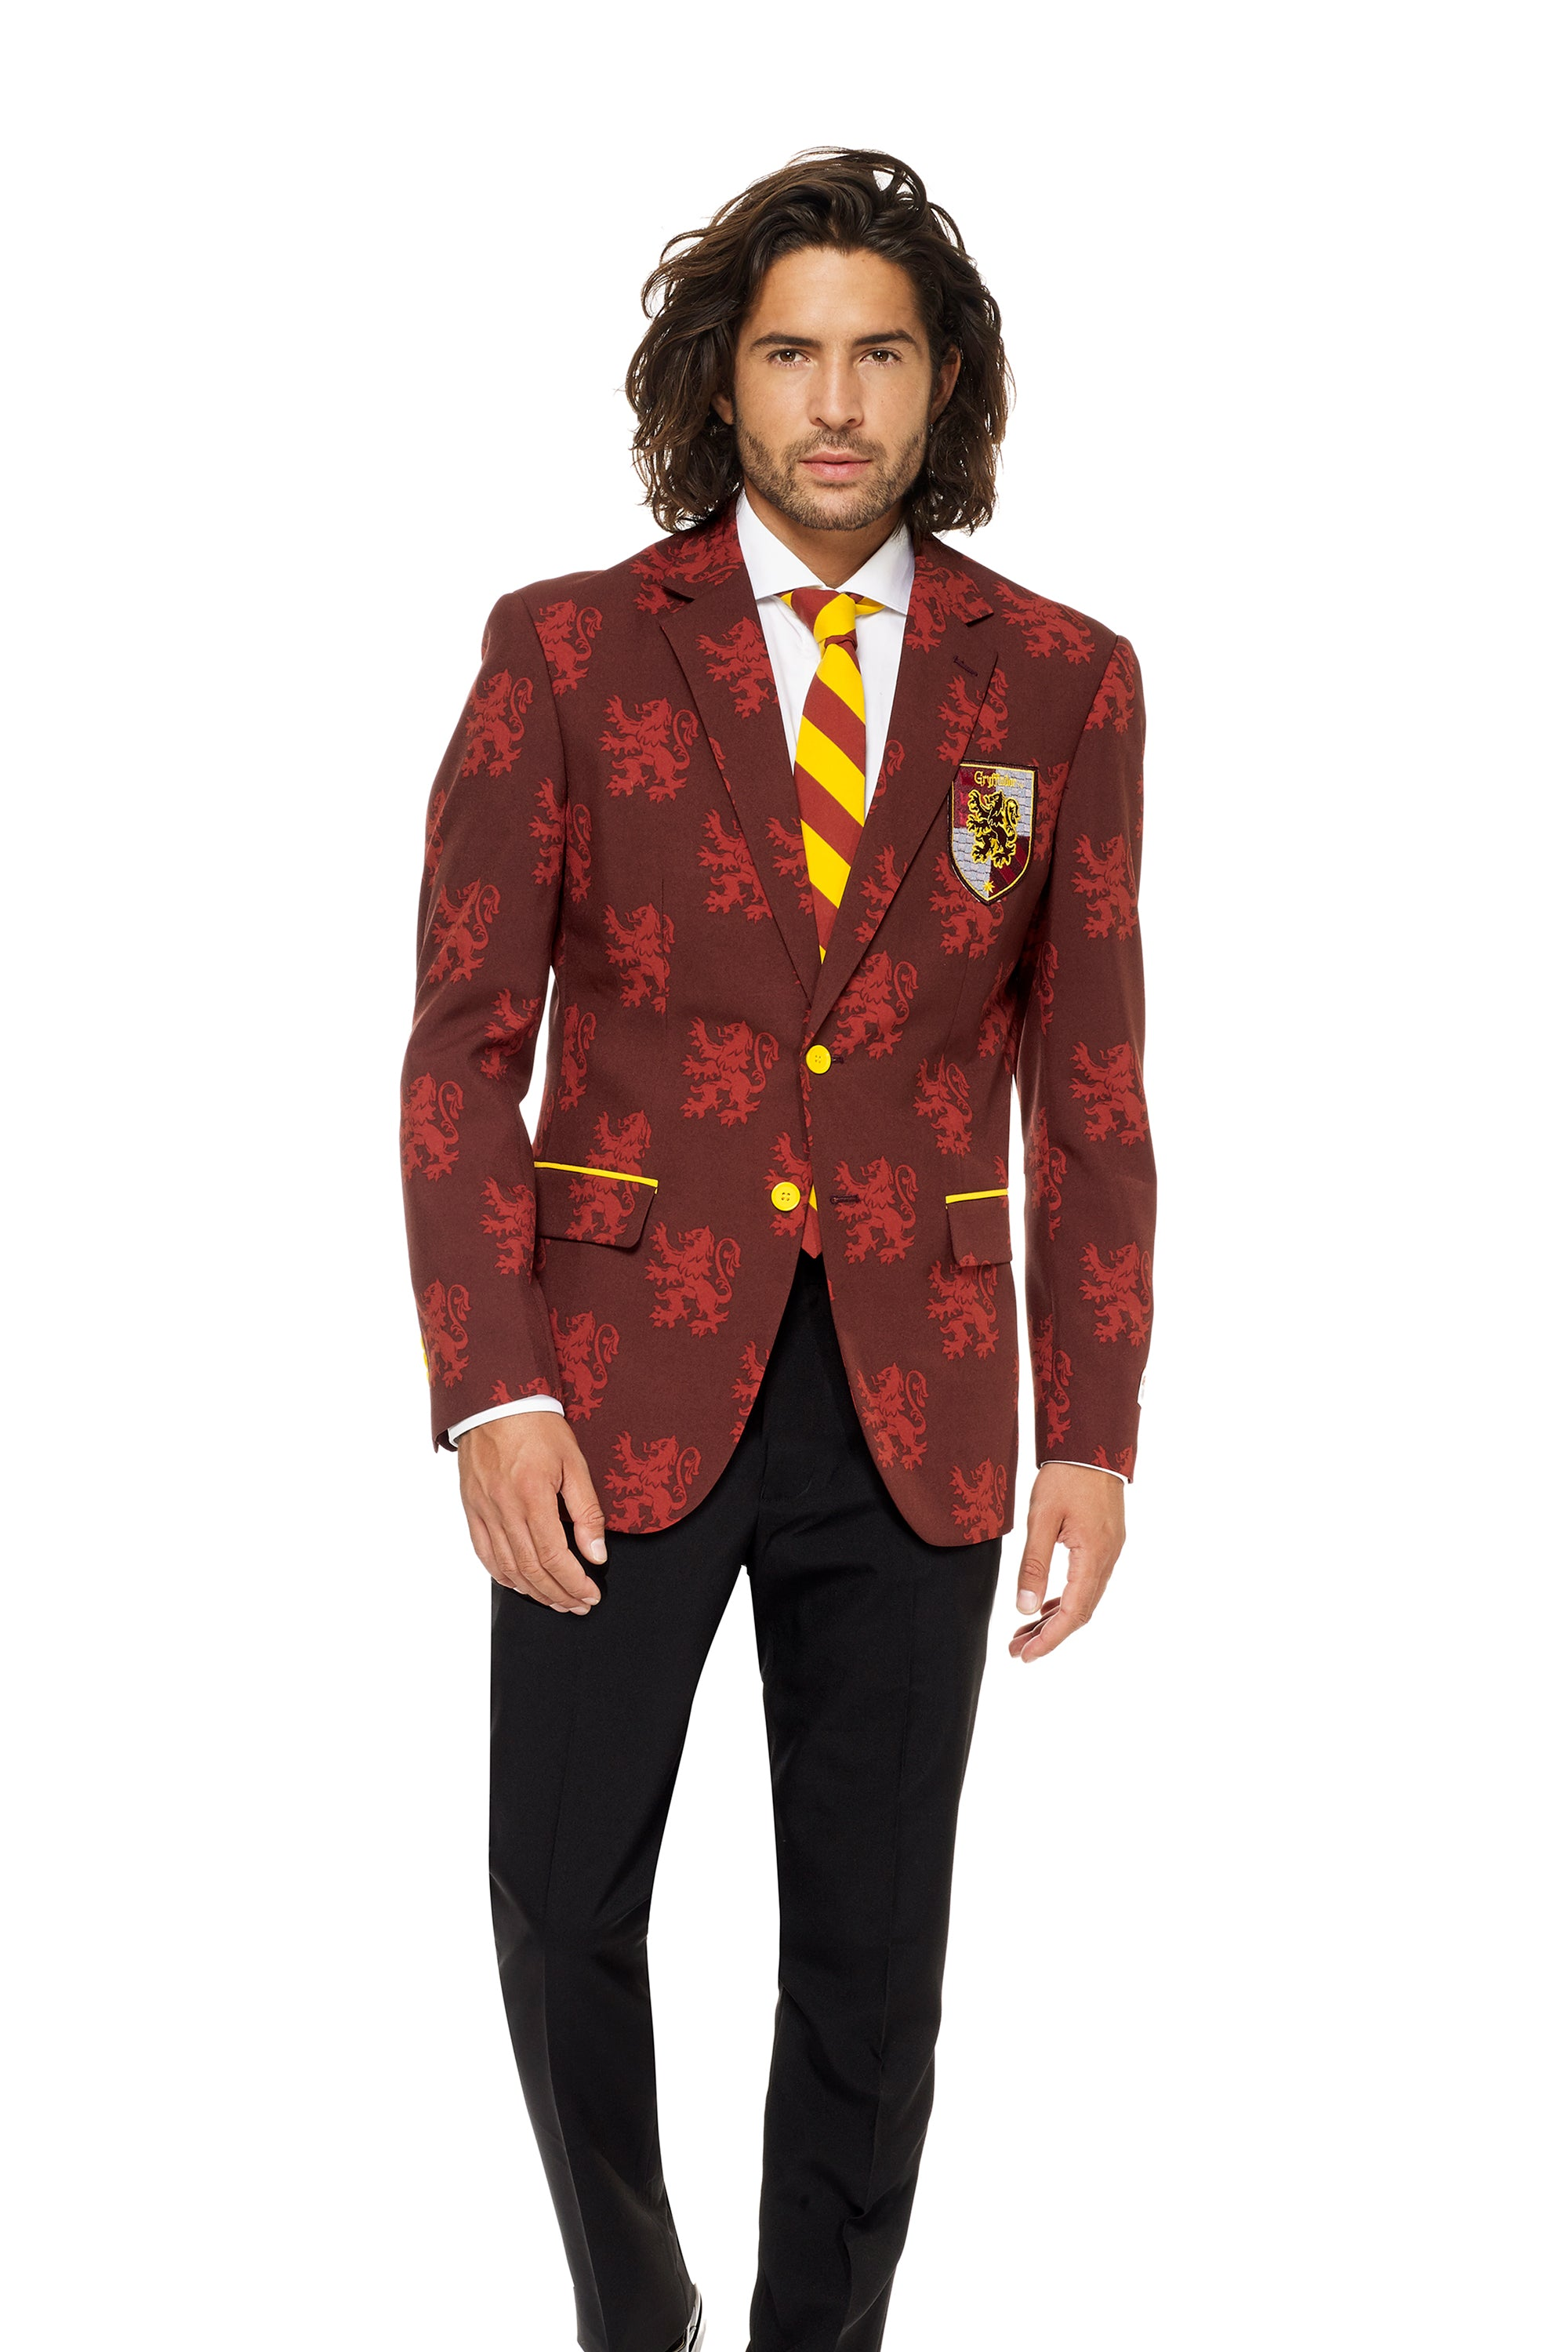 Harry Potter Suit By Opposuits Slytherin This Gryffindor